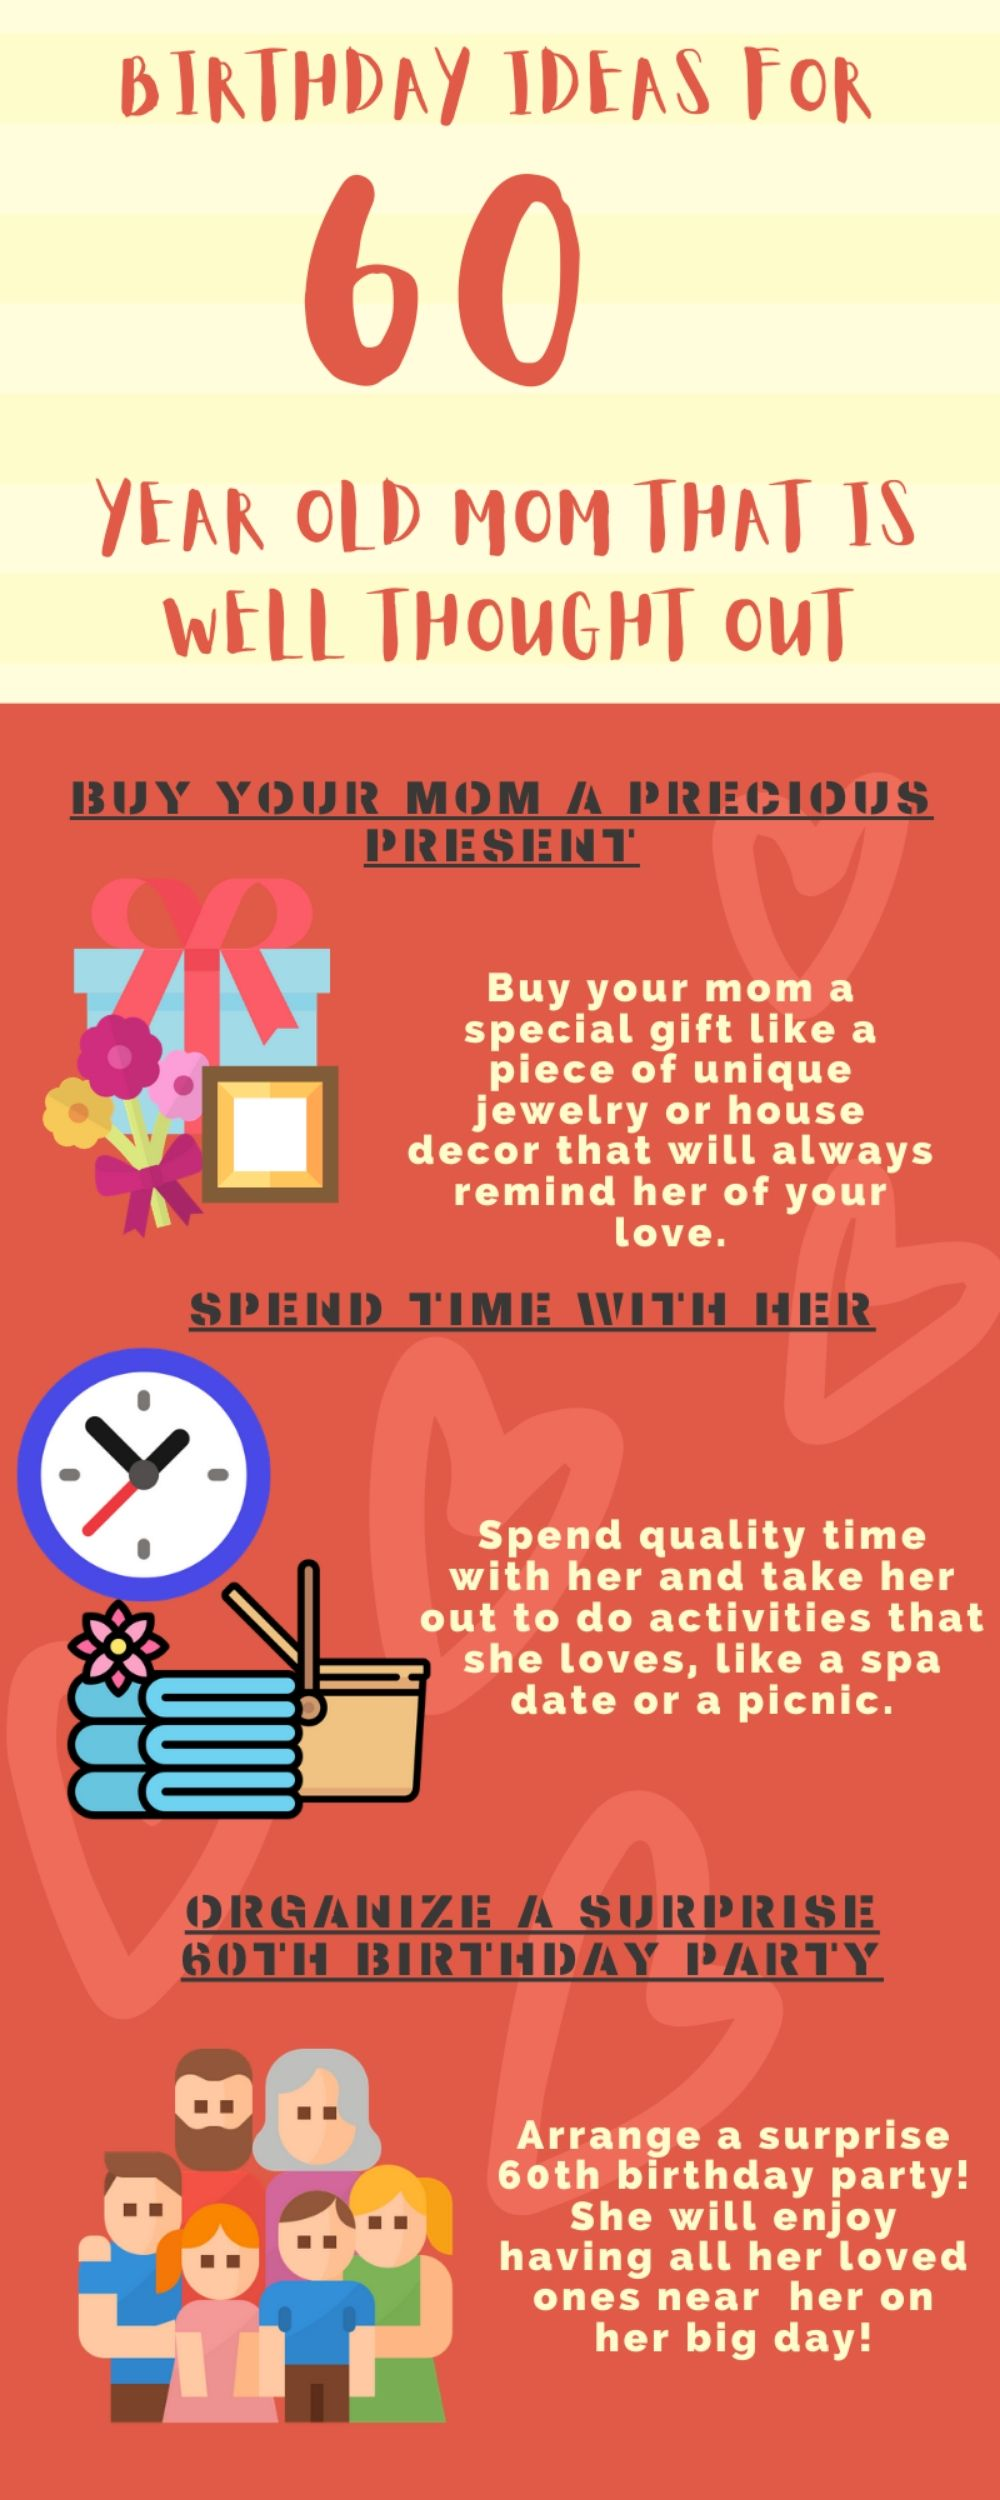 Infographic birthday ideas for 60 year old mom, women